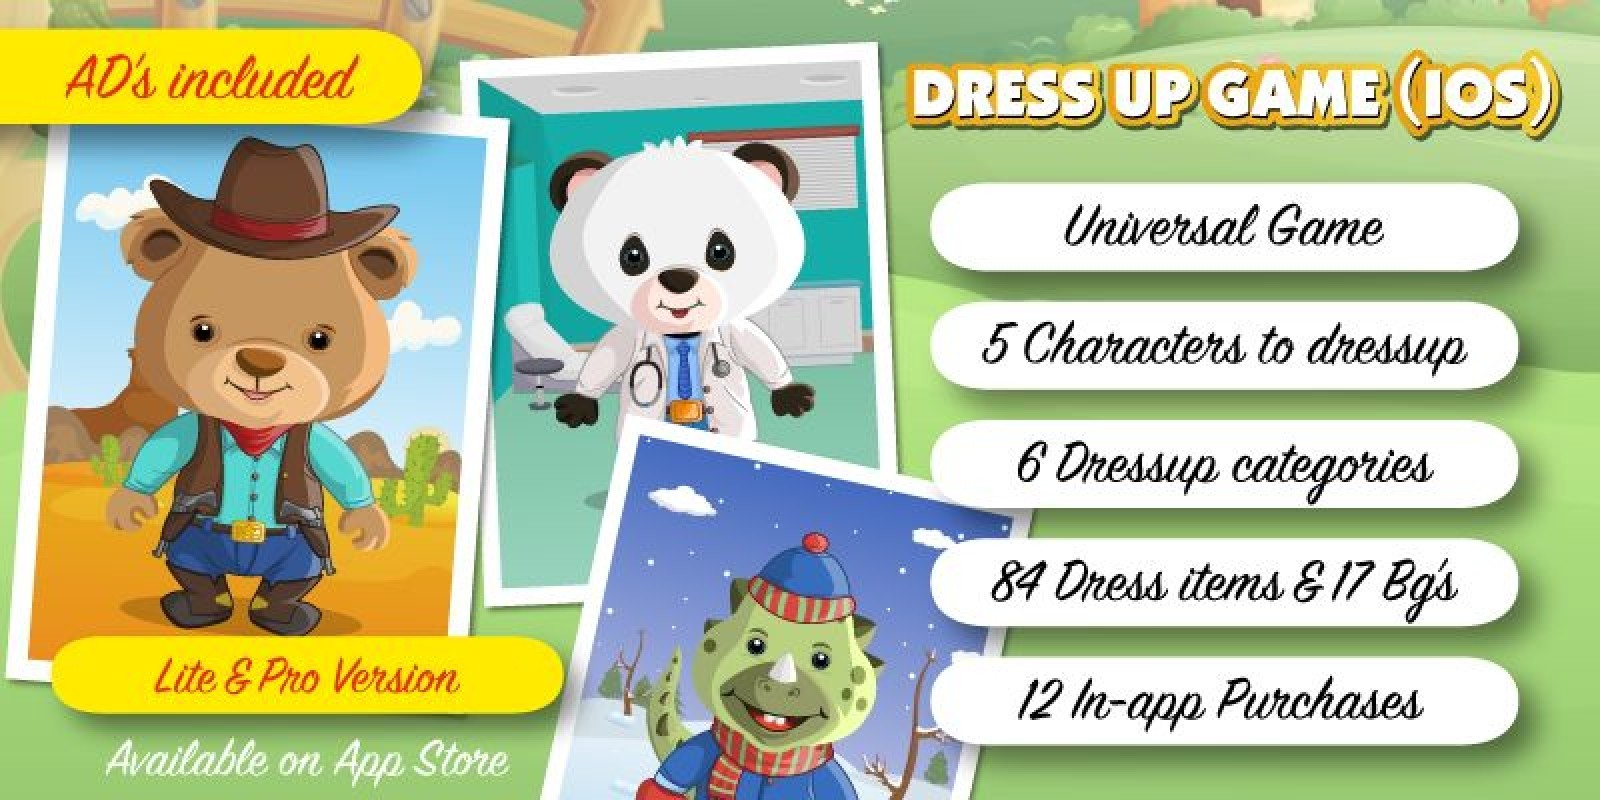 Dress up Game - iOS App Source Code